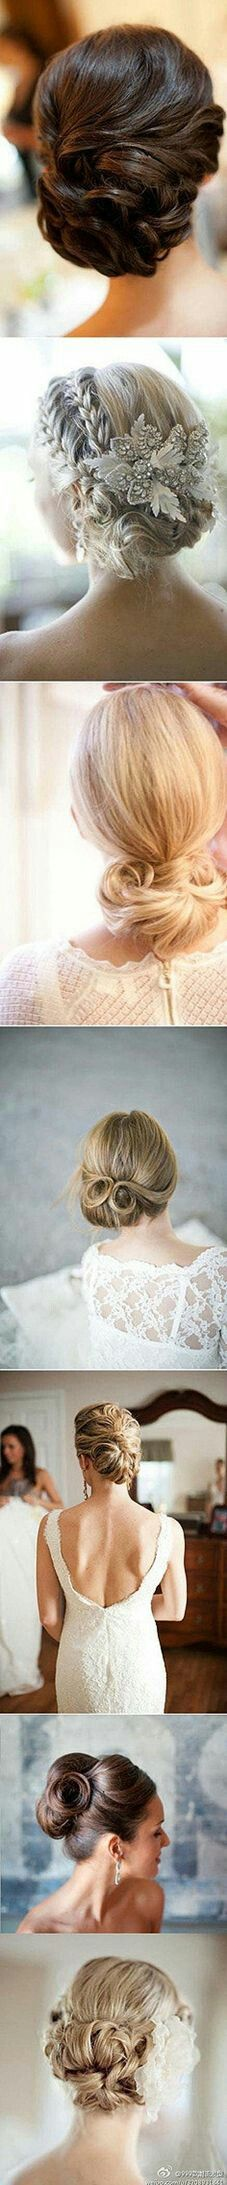 Different hairstyles buns